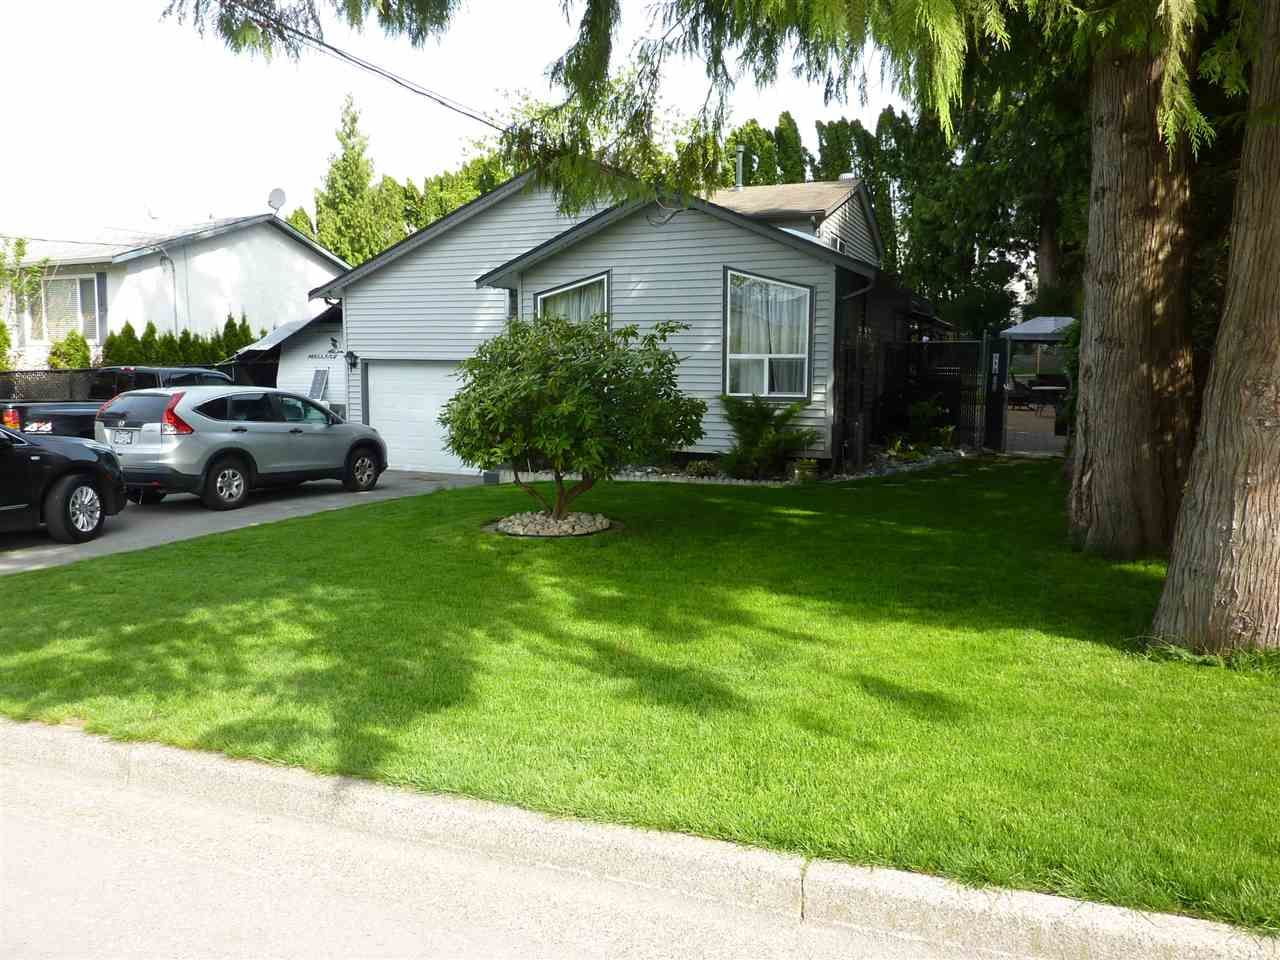 Main Photo: 32275 MCRAE Avenue in Mission: Mission BC House for sale : MLS®# R2264302